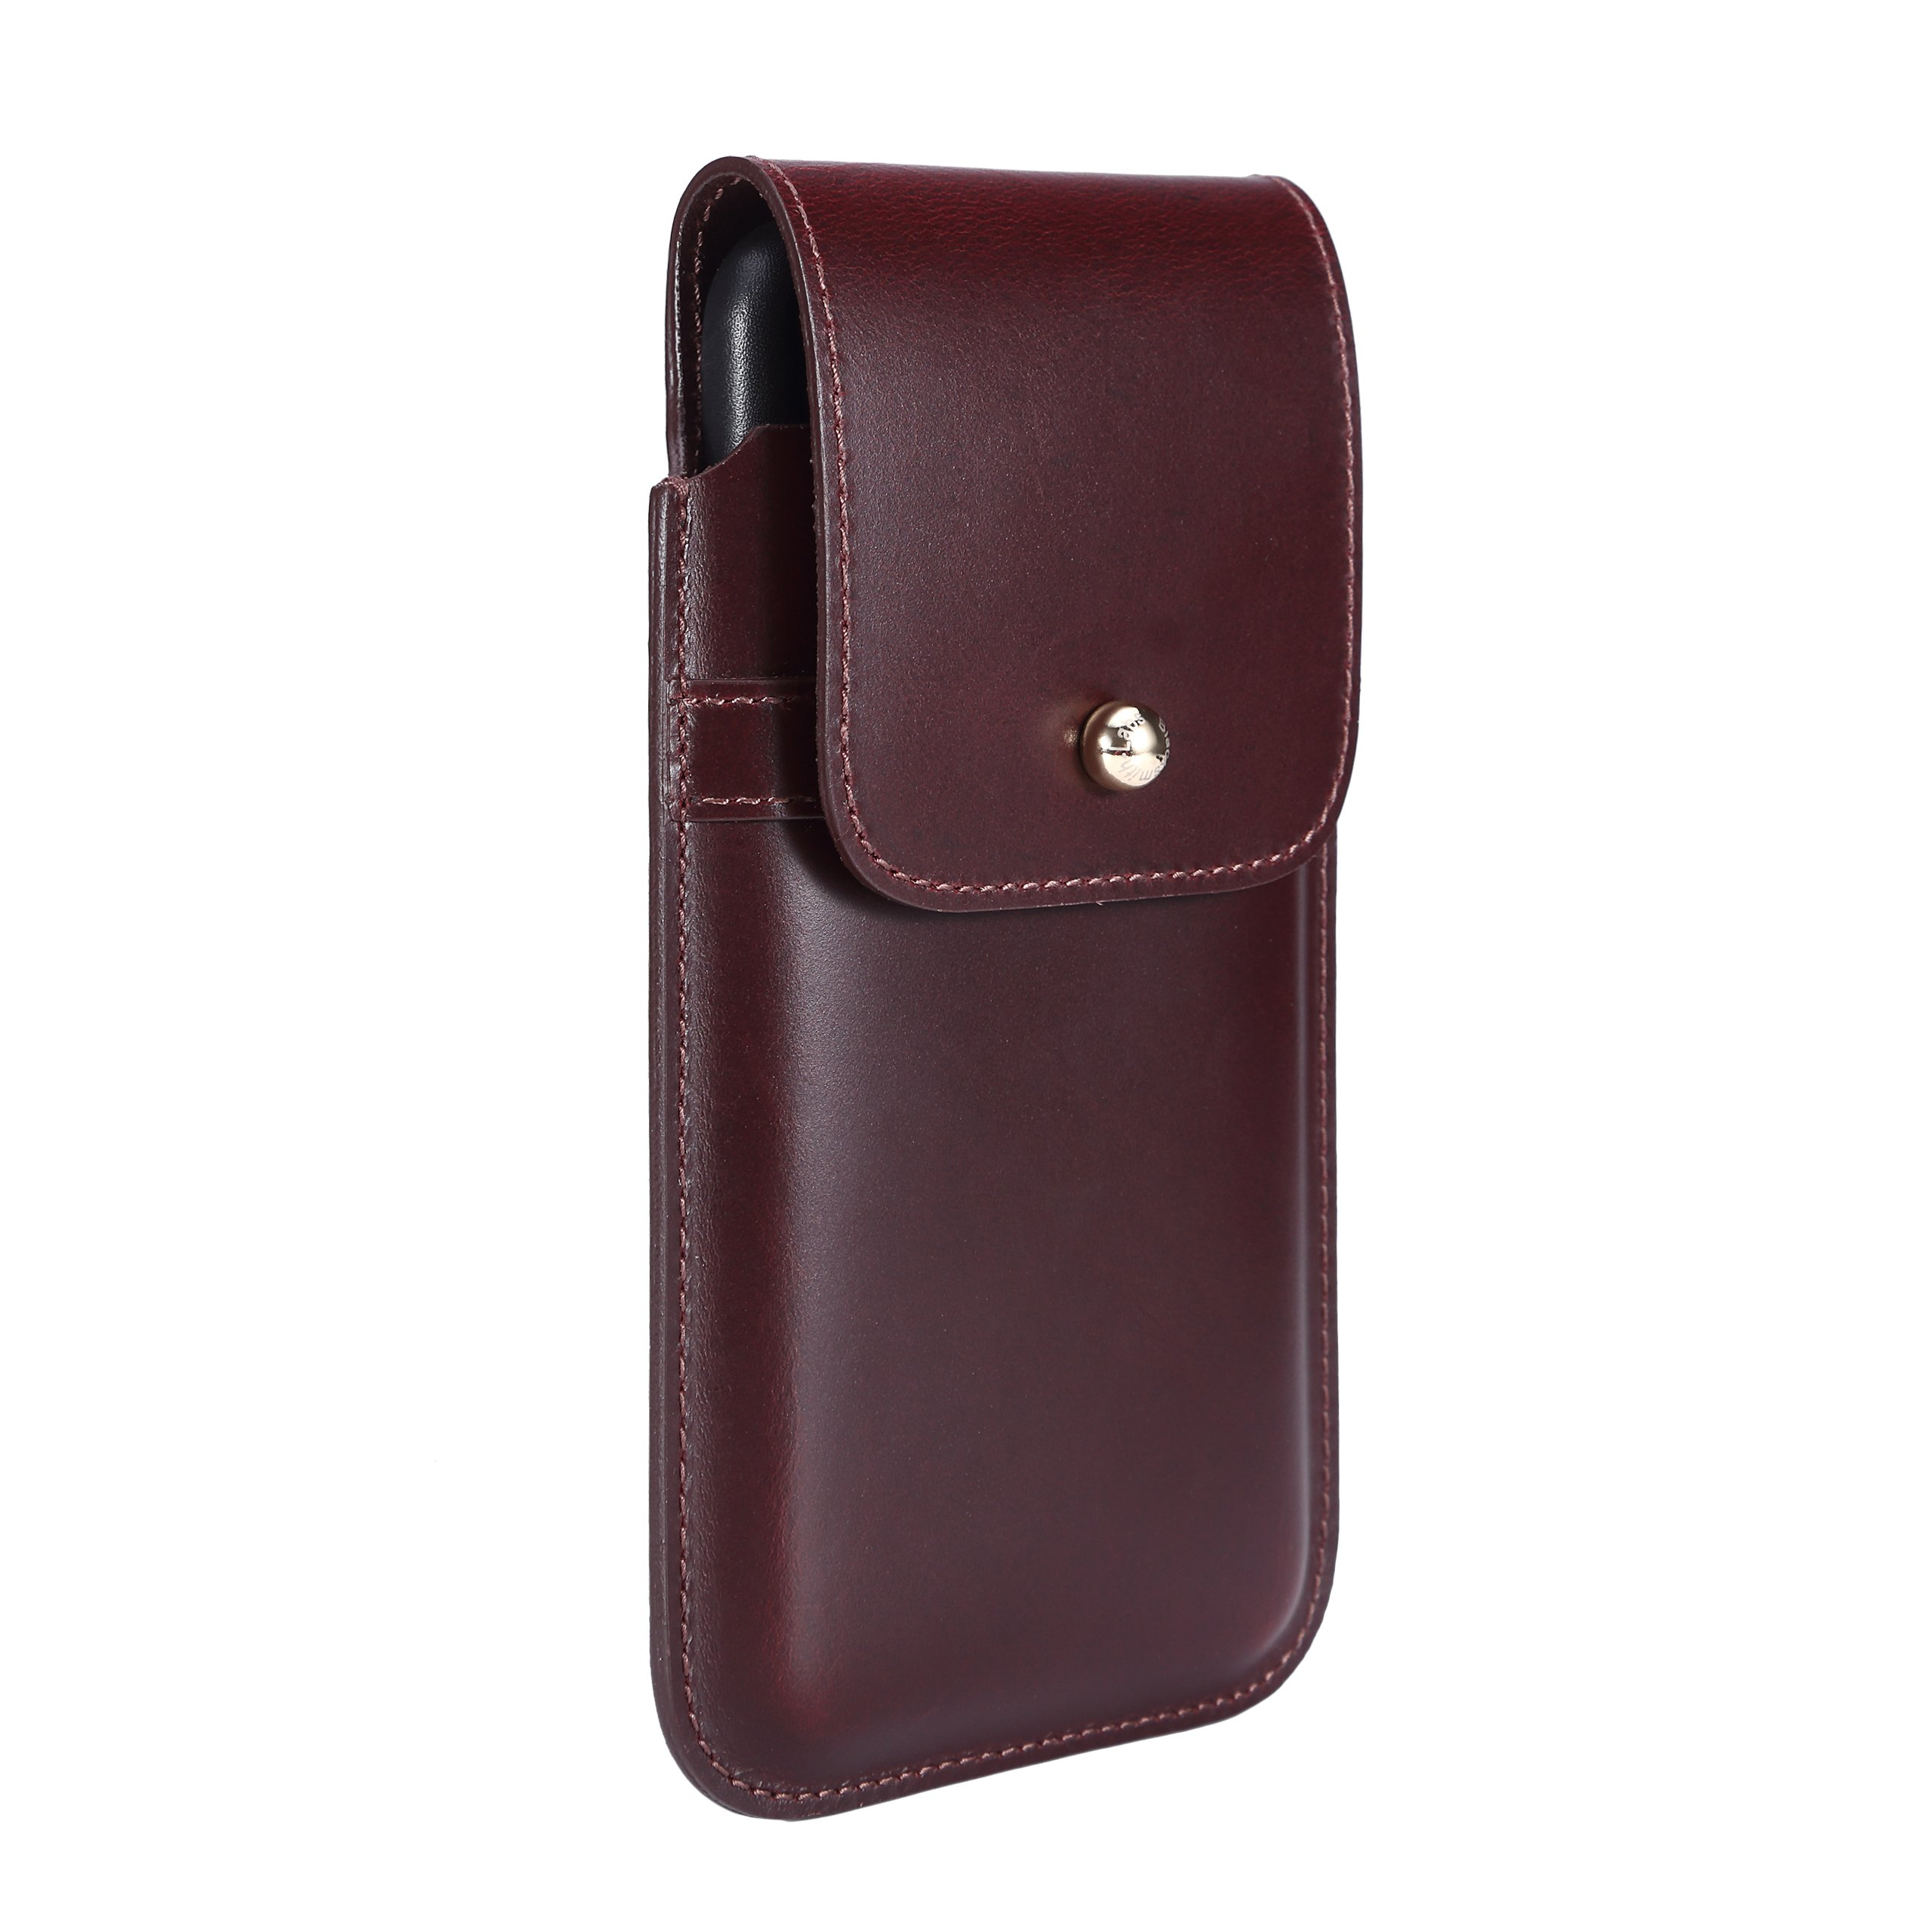 Blacksmith-Labs Barrett Mezzano 2017 Premium Genuine Leather Swivel Belt Clip Holster for Apple iPhone 7 Plus (5.5 inch screen) for use with Apple Leather Case - Burgundy Cowhide/Gold Belt Clip